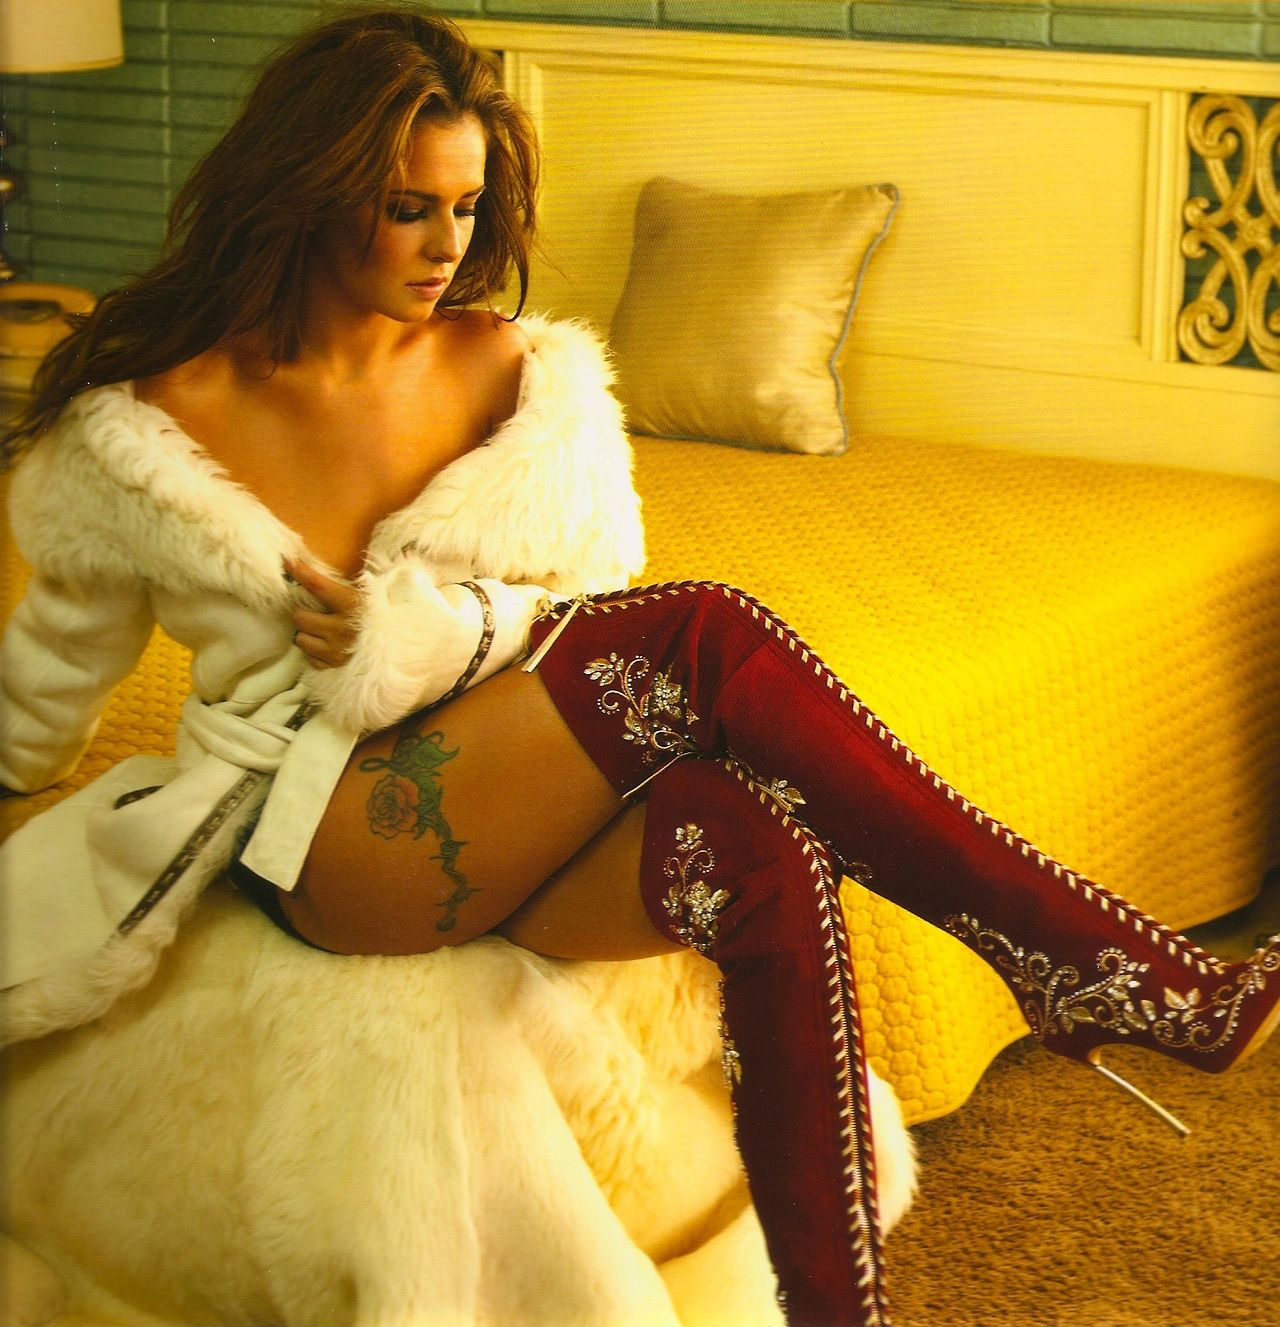 Sexy cheryl cole xxx, prono picture naked stars